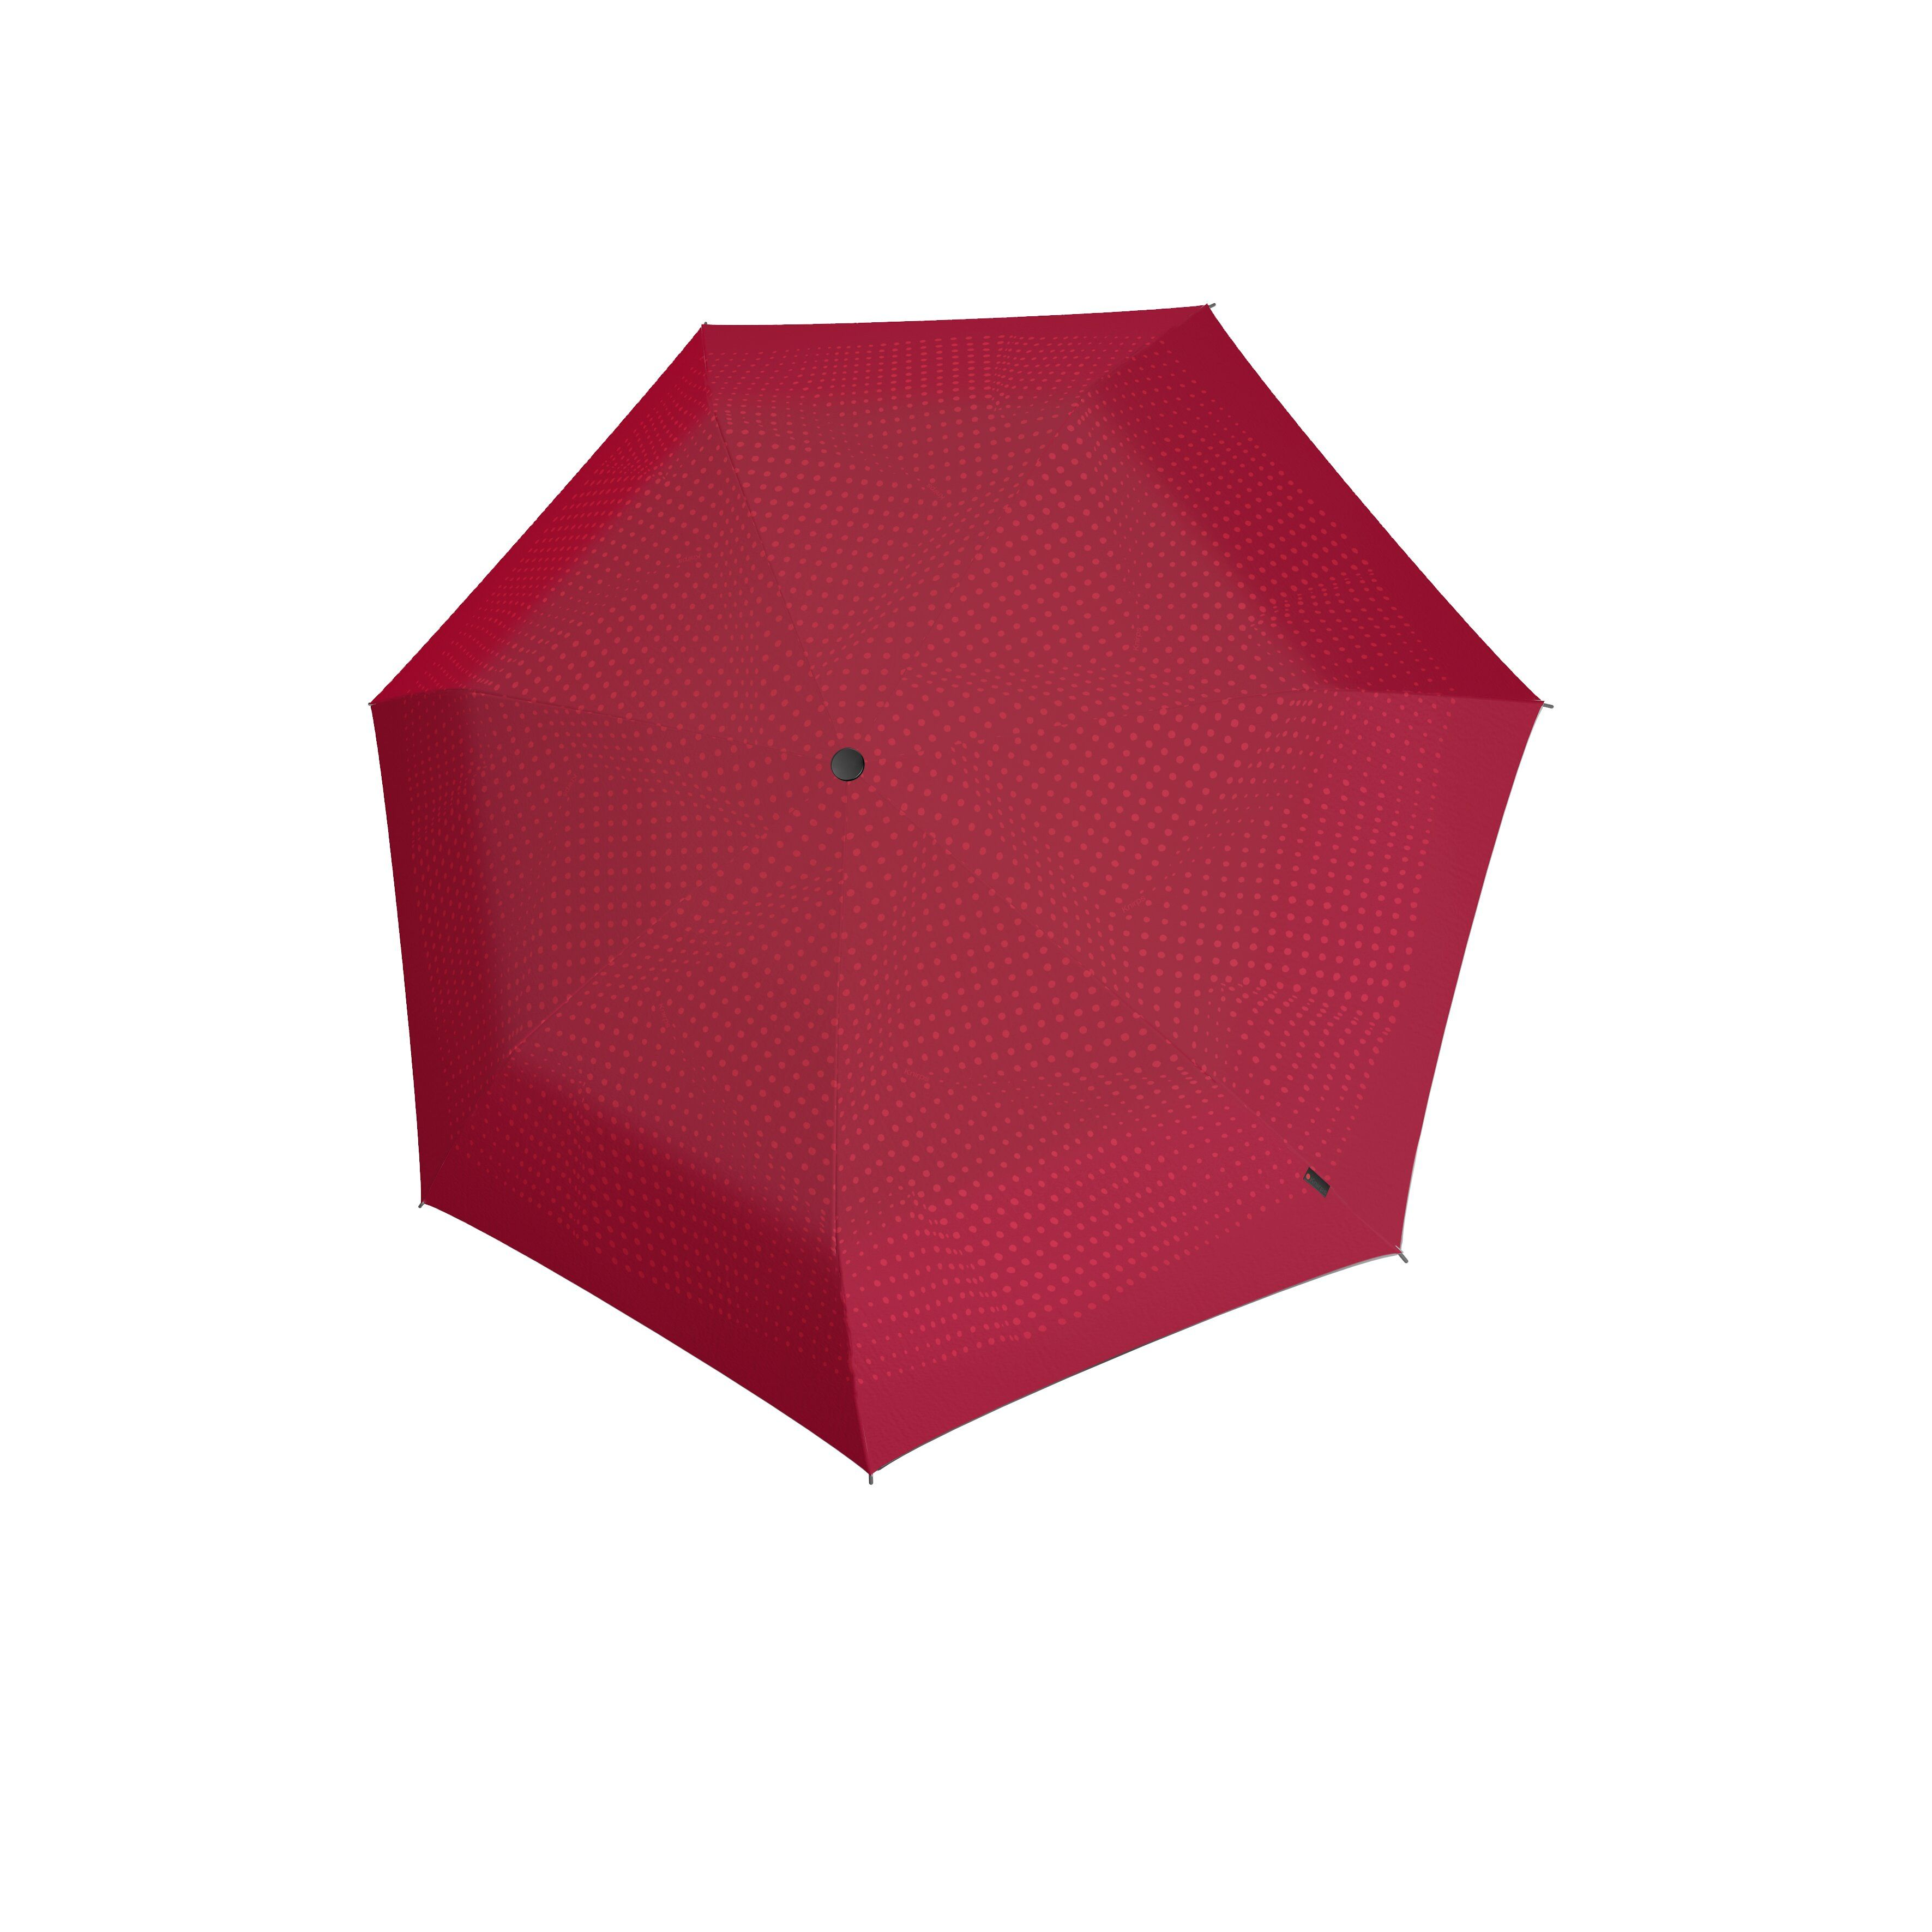 Knirps Umbrella Knirps T.050 medium manual difference red ecorepel